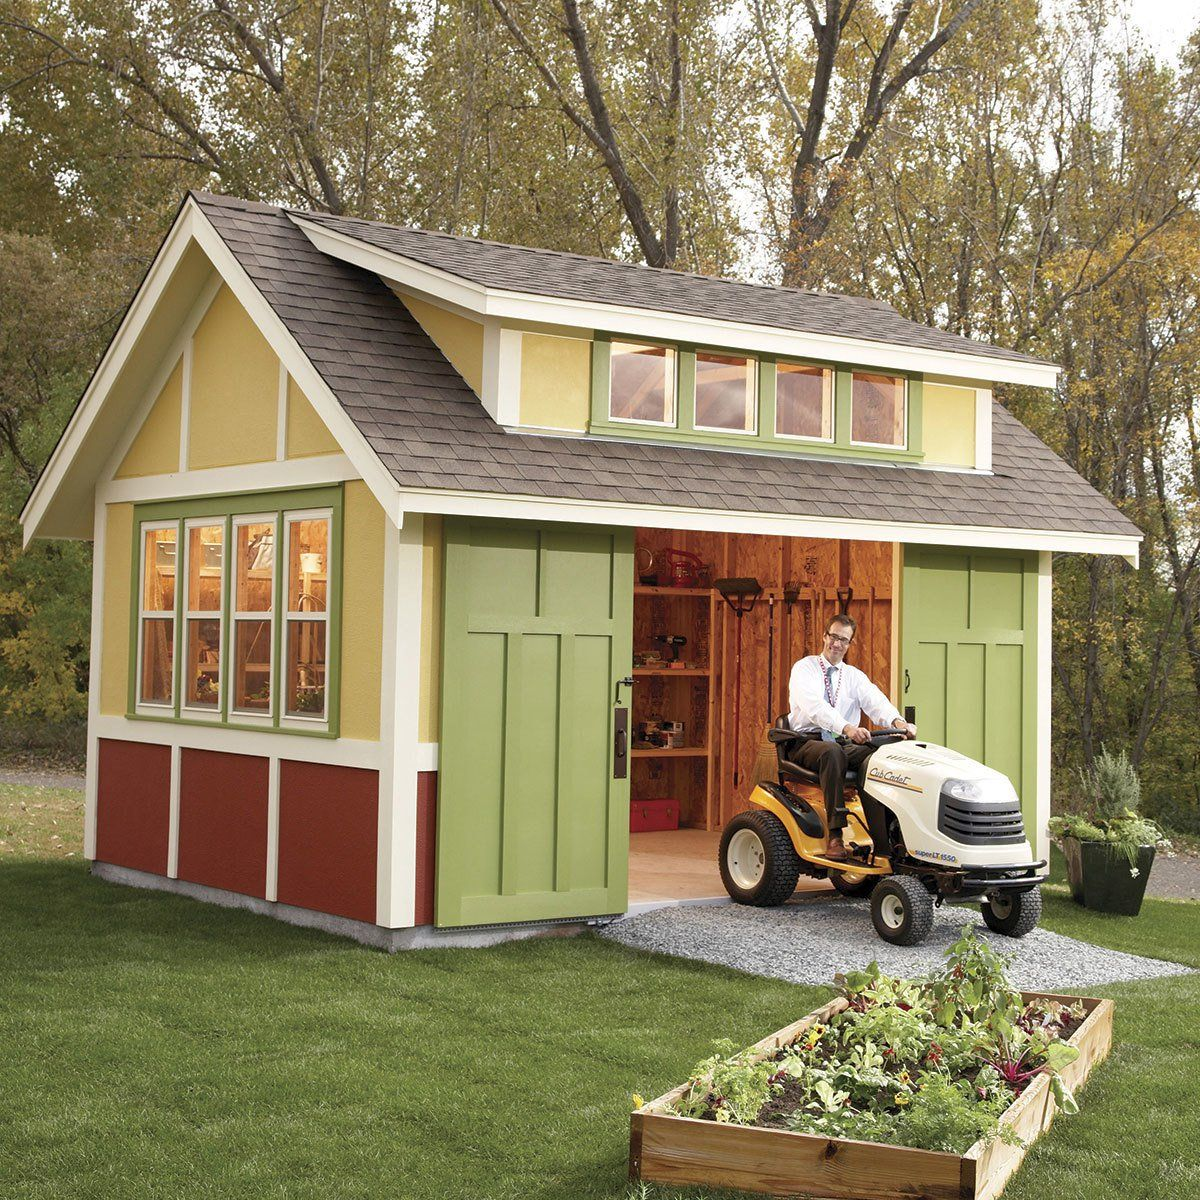 8 outdoor projects you can do yourself outdoors pinterest 8 outdoor projects you can do yourself rv garagegarage solutioingenieria Gallery